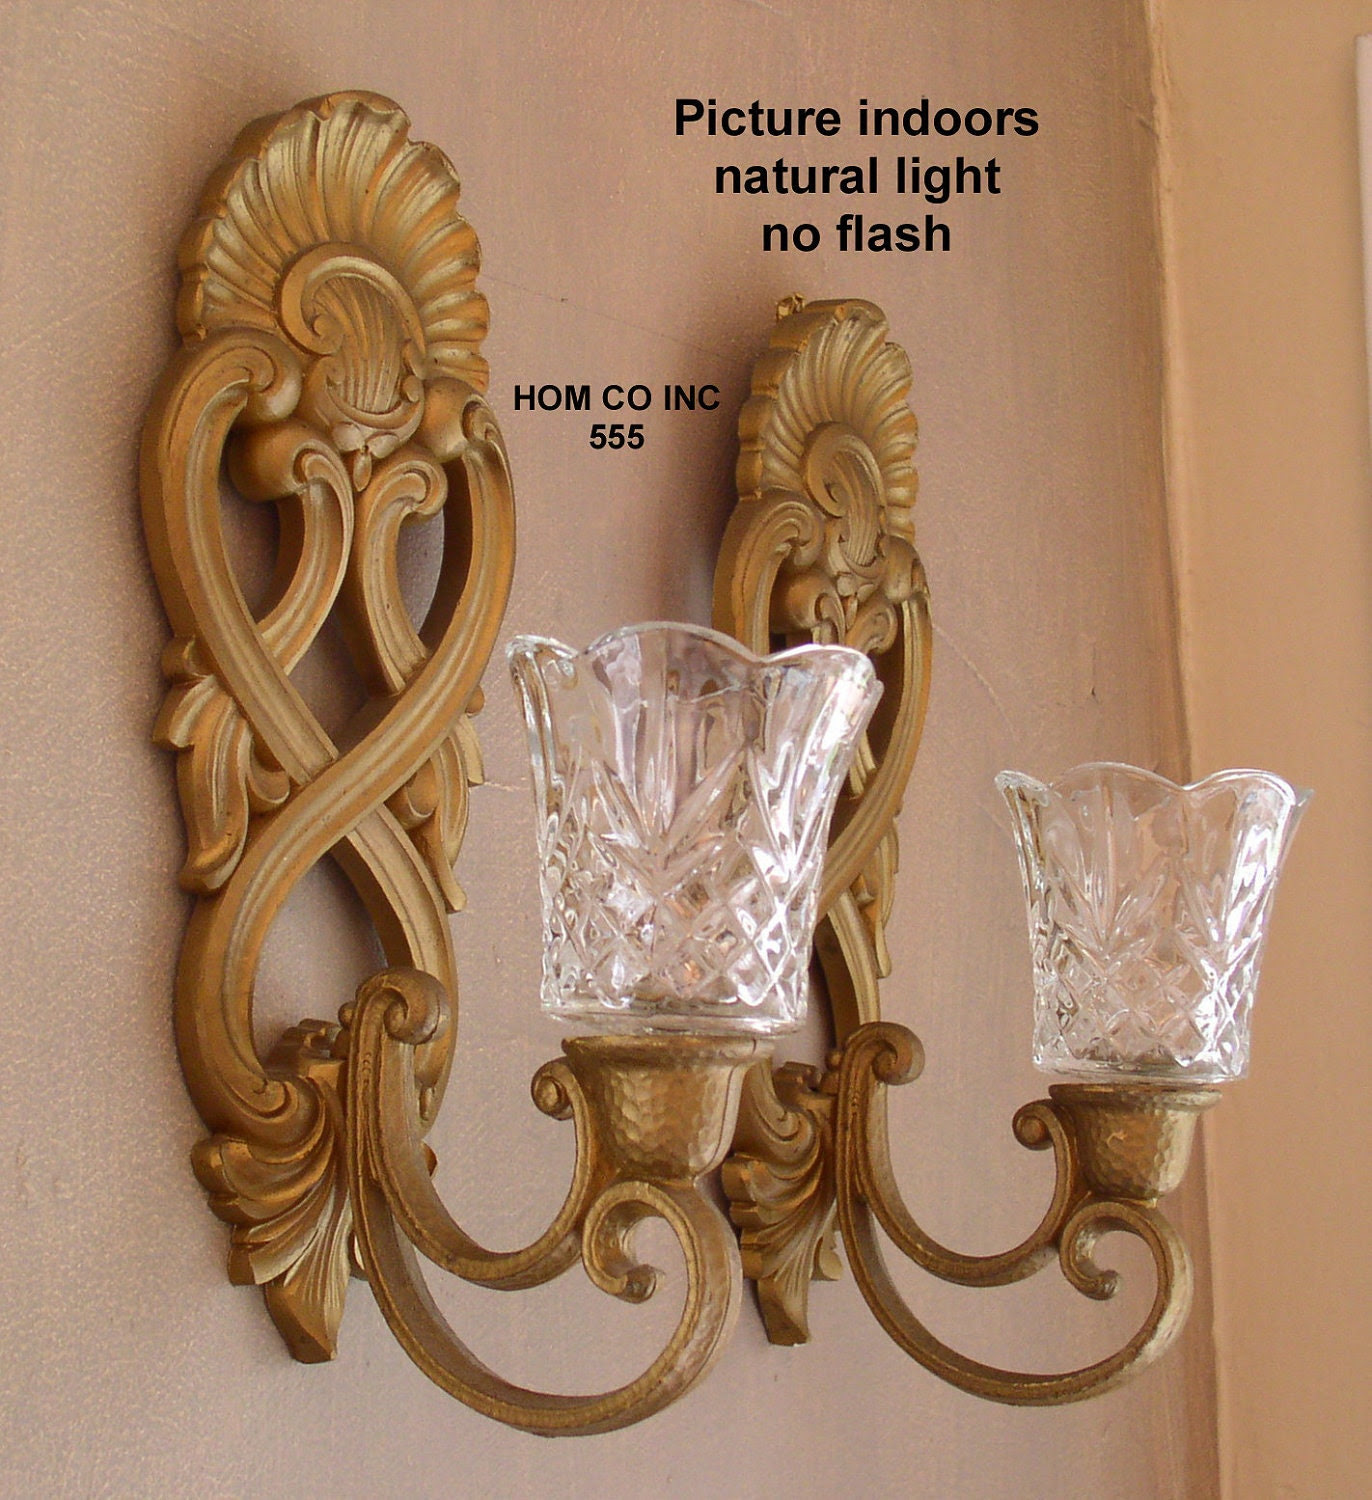 Vintage Scroll Wall Sconce Candle Holder with Glass by duckpod